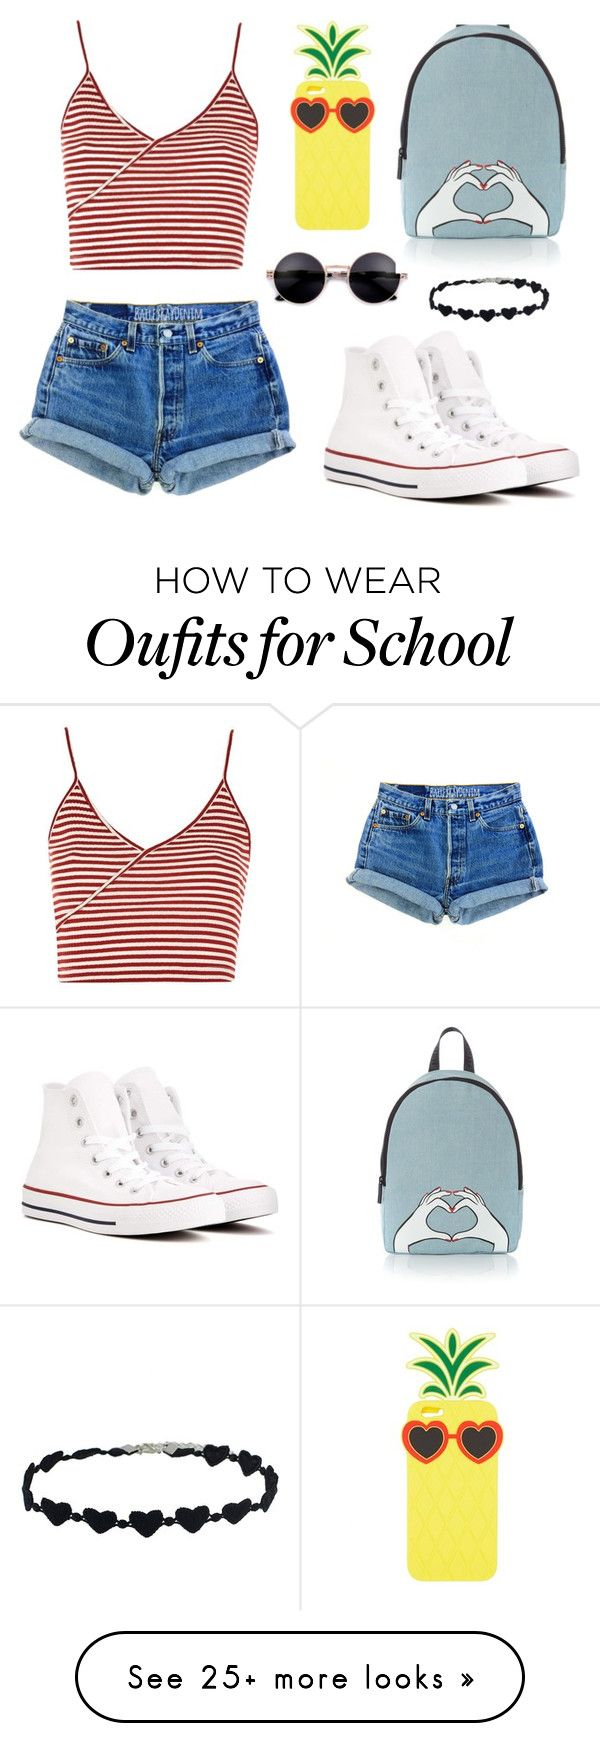 """Converse Cutie"" by claire394 on Polyvore featuring Topshop, Converse, Charlotte Russe and Lulu Guinness"